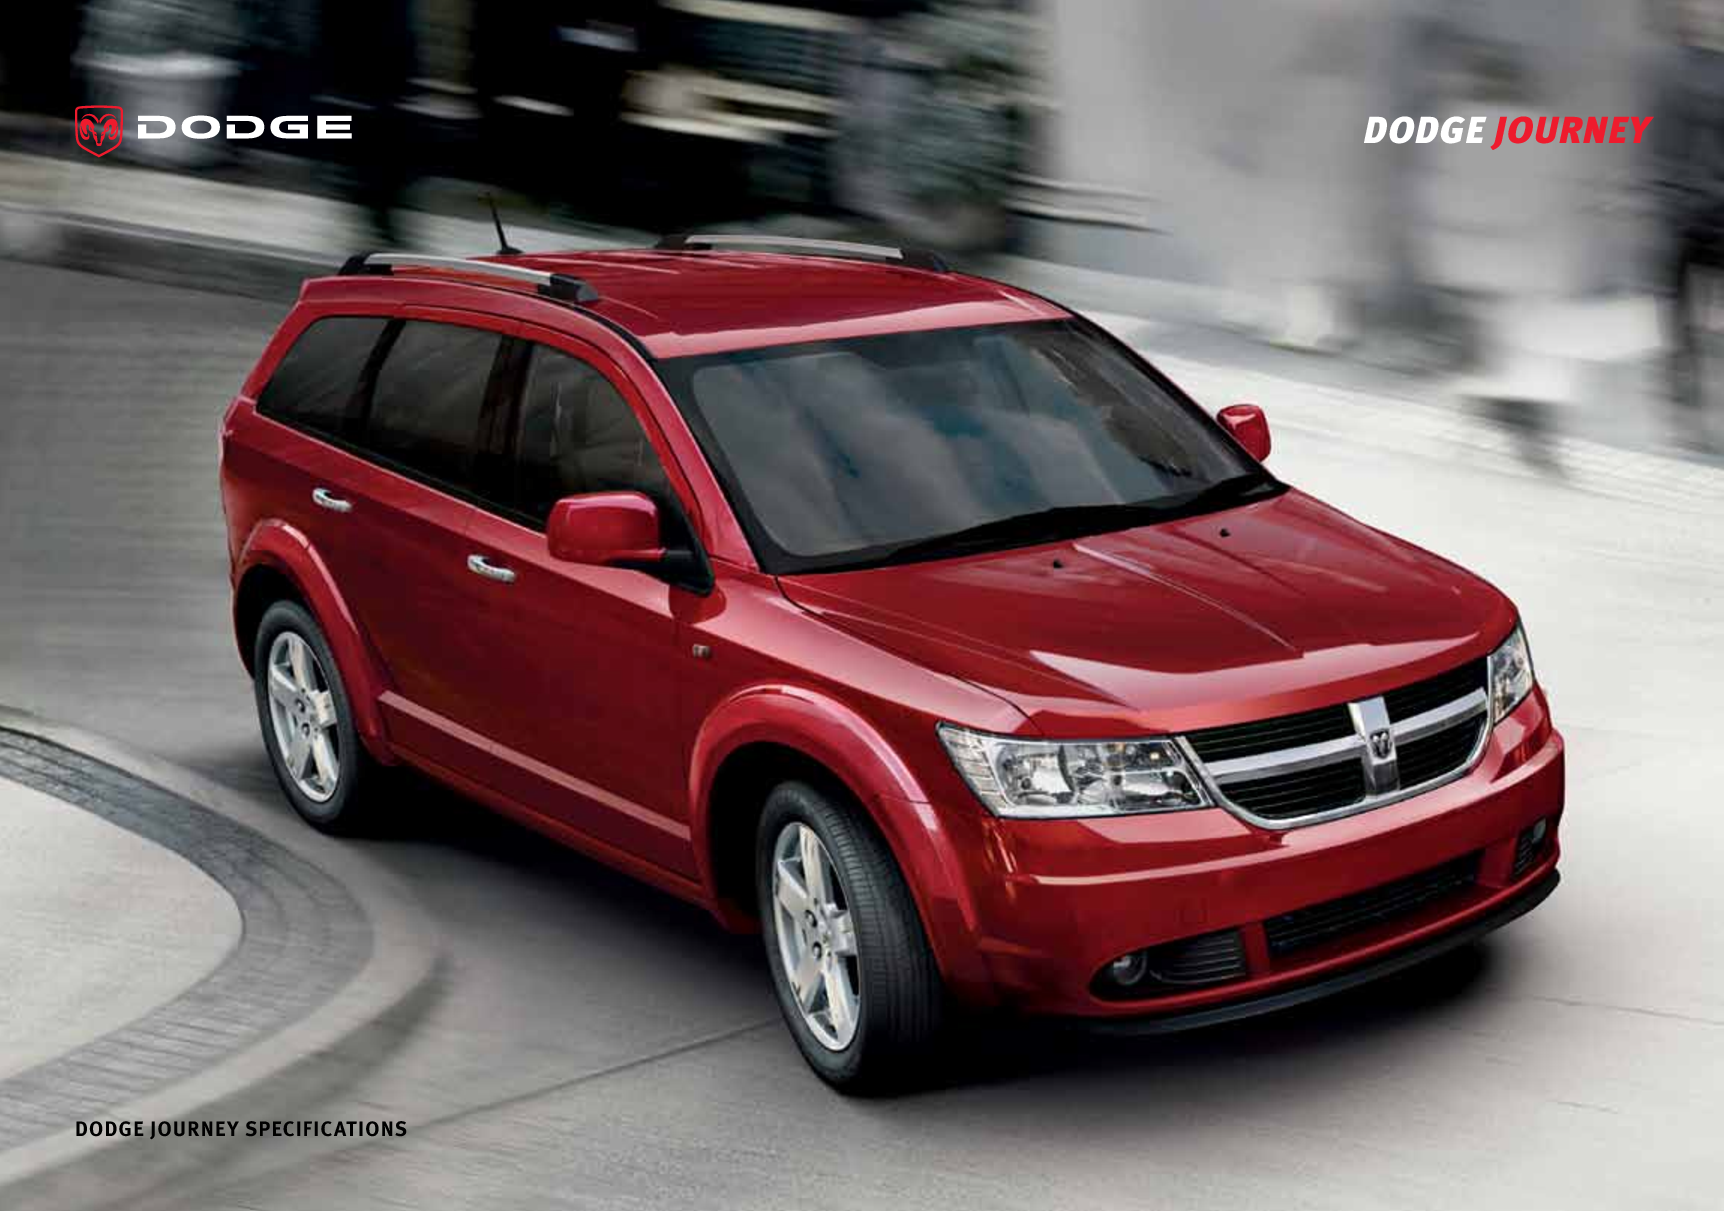 DODGE JOURNEY 2.0 red